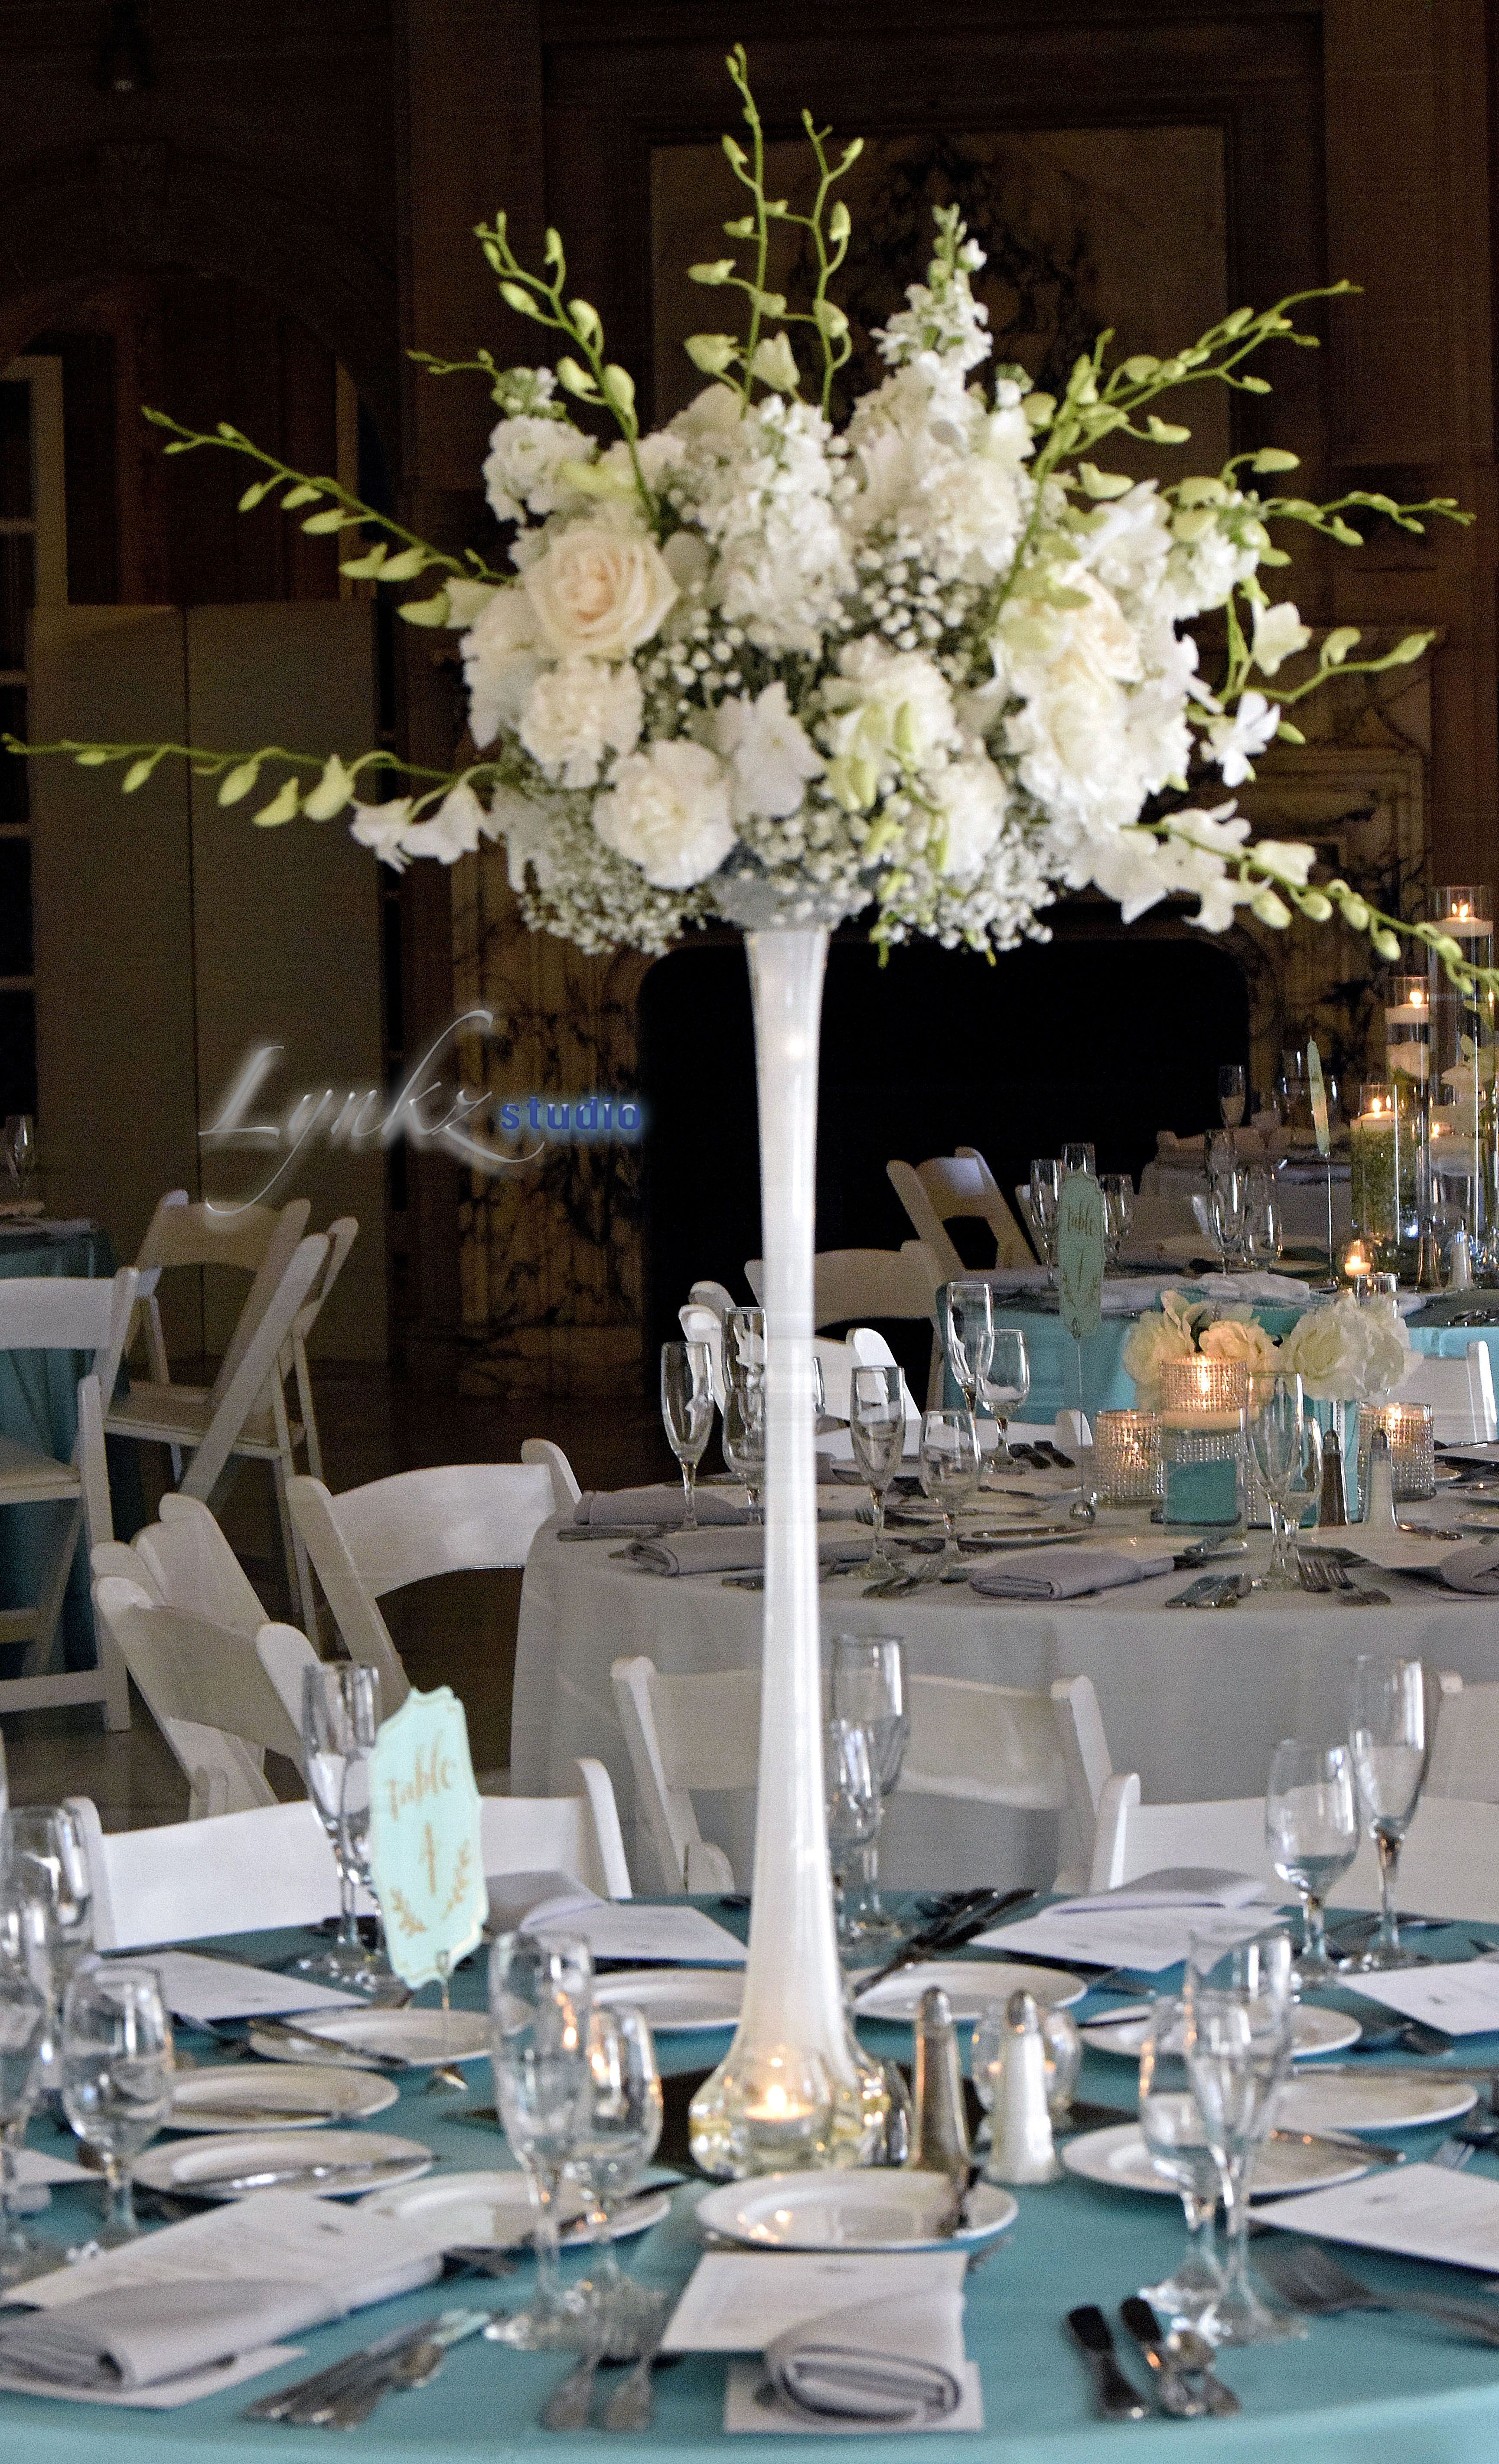 Guest Table Centerpiece On Eiffel Tower Vase With White Dendrobium